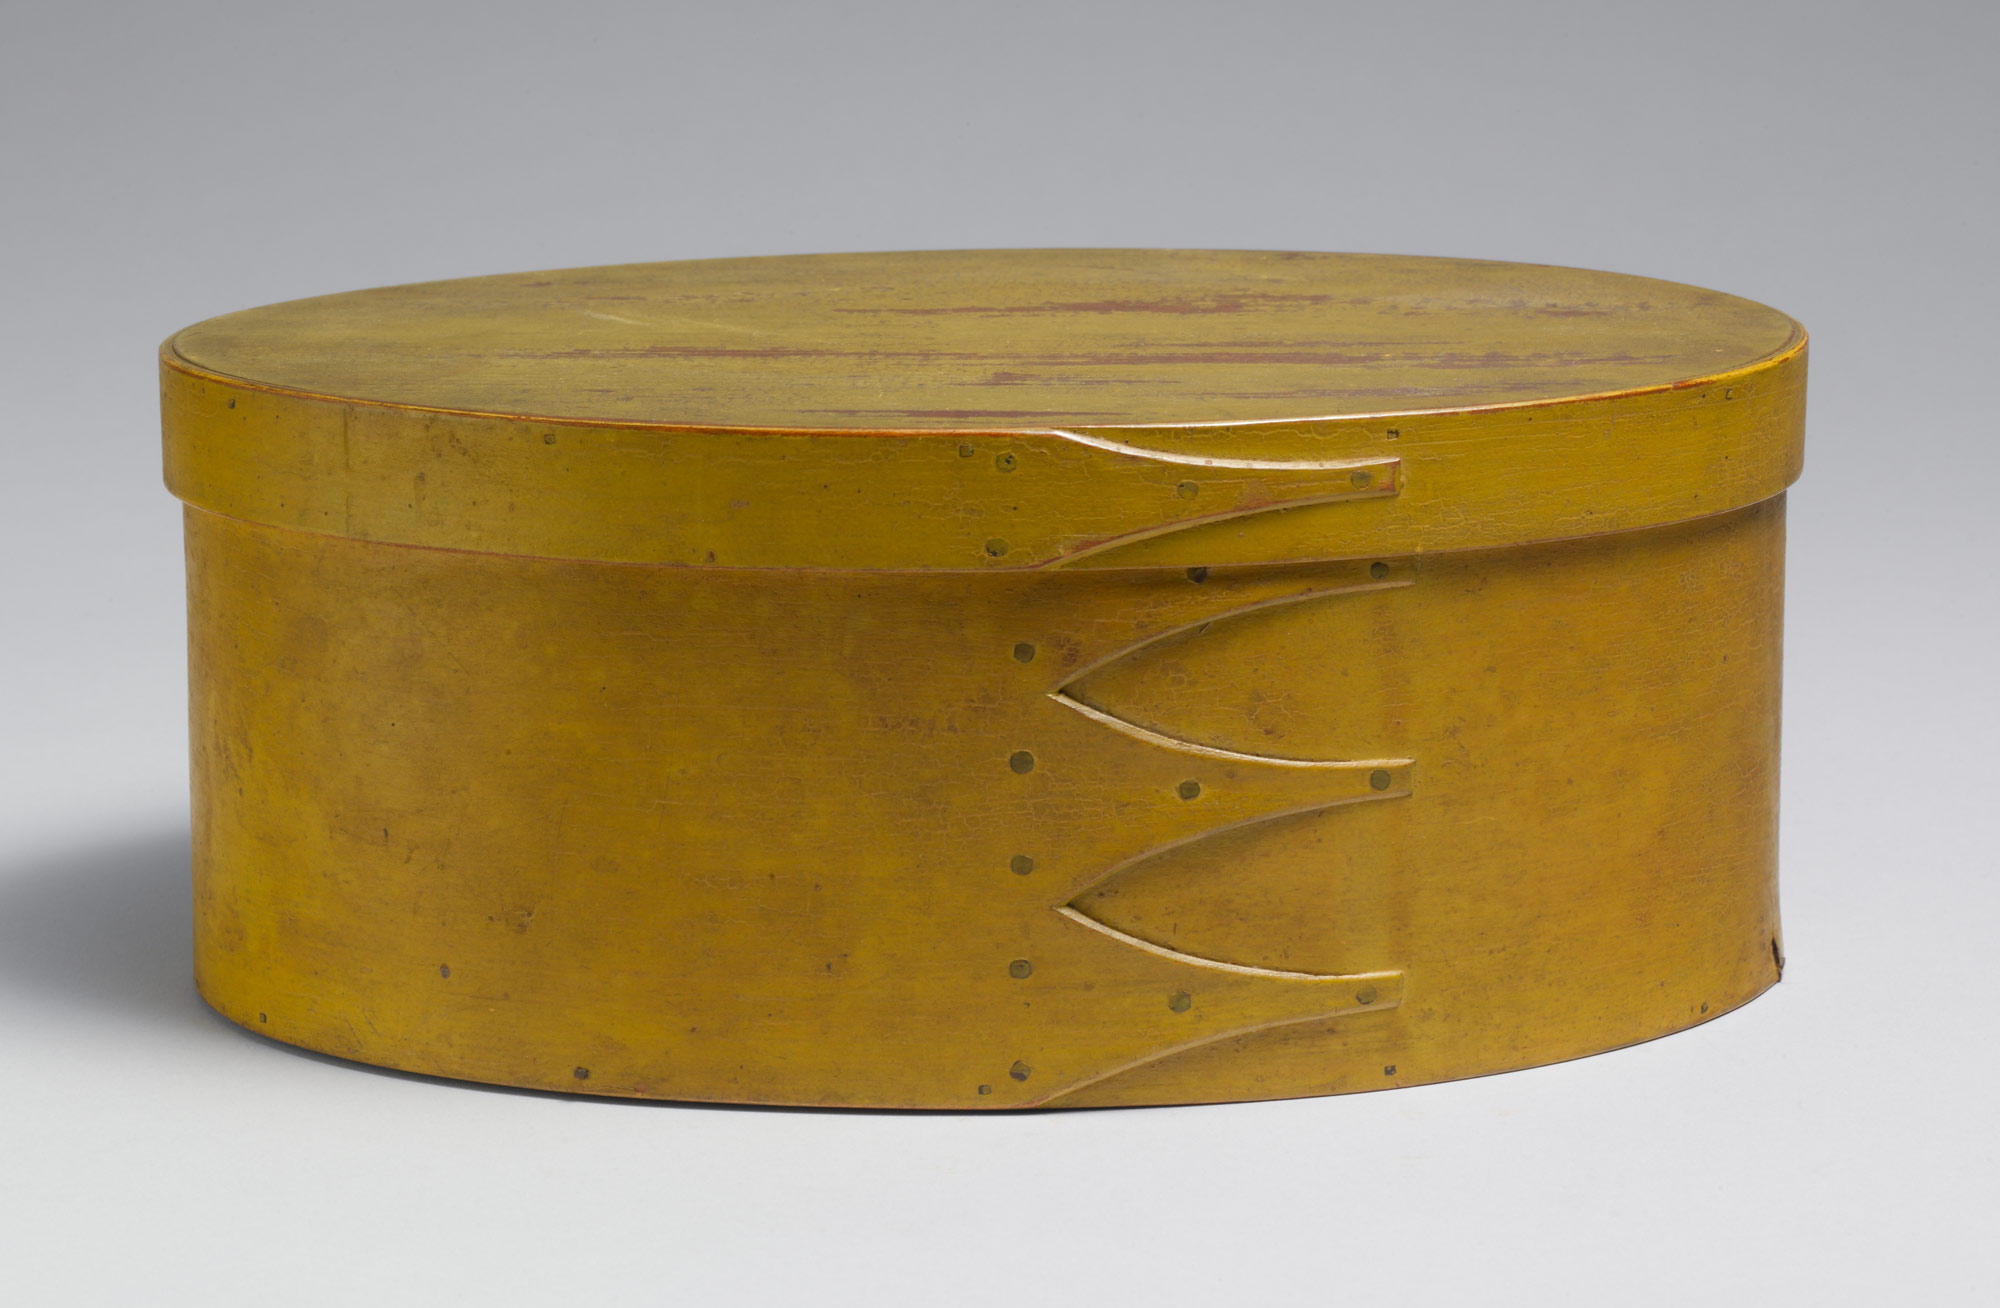 Oval box, 1800-1900. Metropolitan Museum of Art, Friends of the American Wing Fund, 1966.